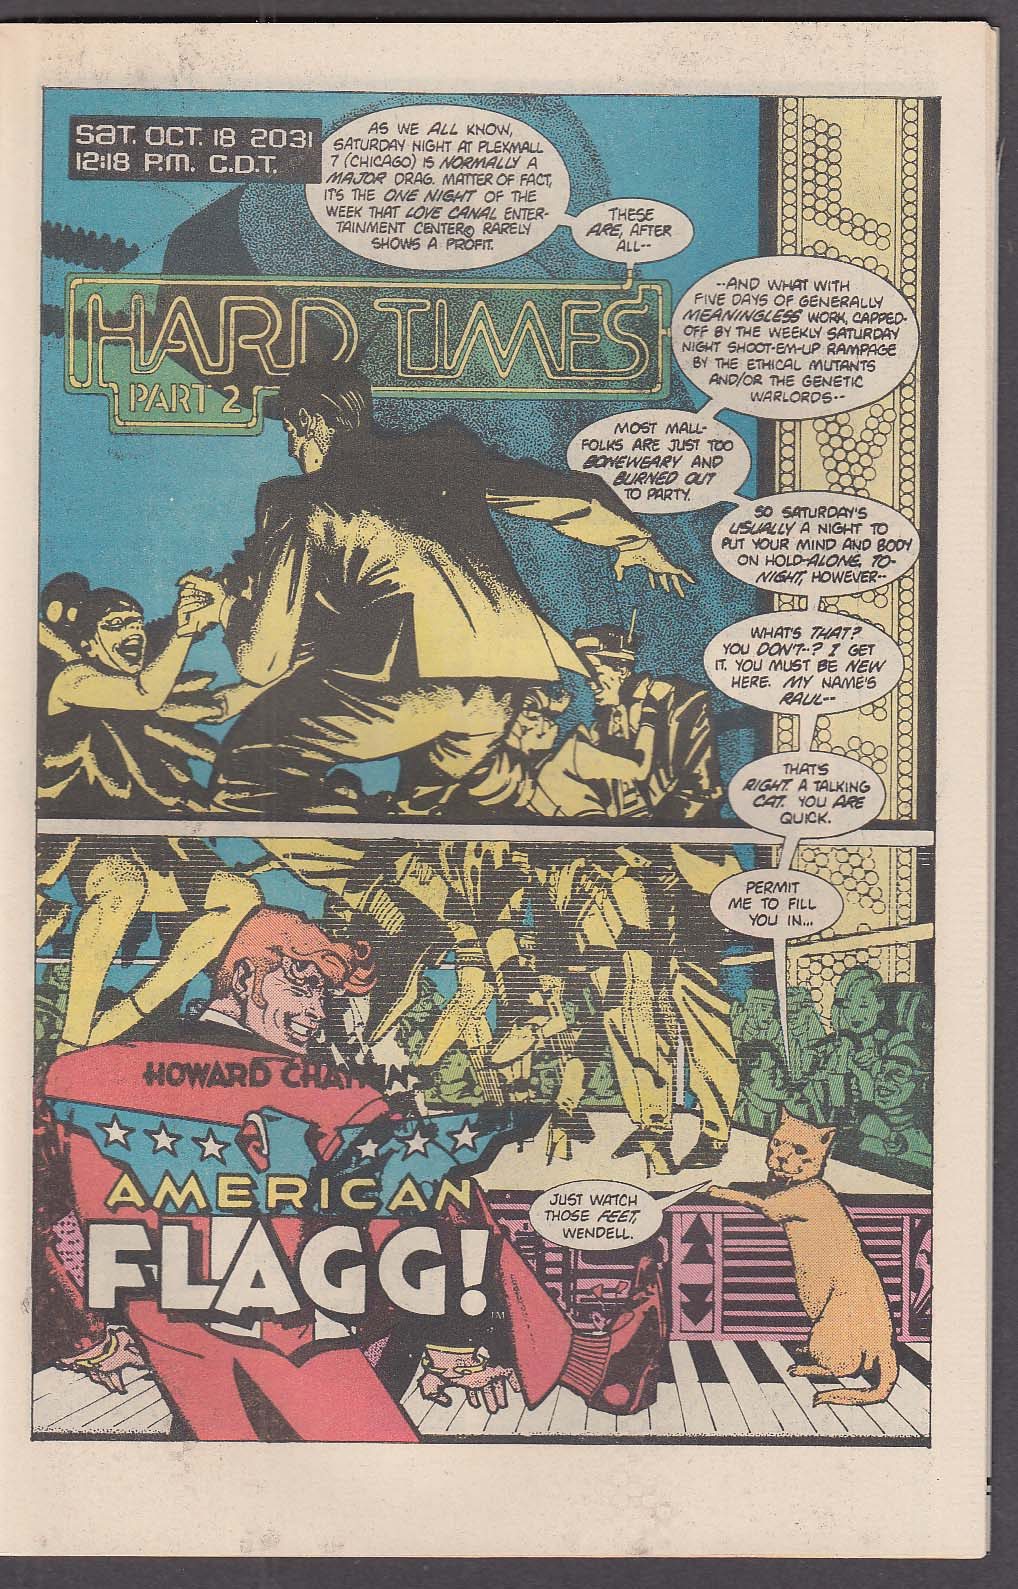 AMERICAN FLAGG! #2 First comic book 11 1983